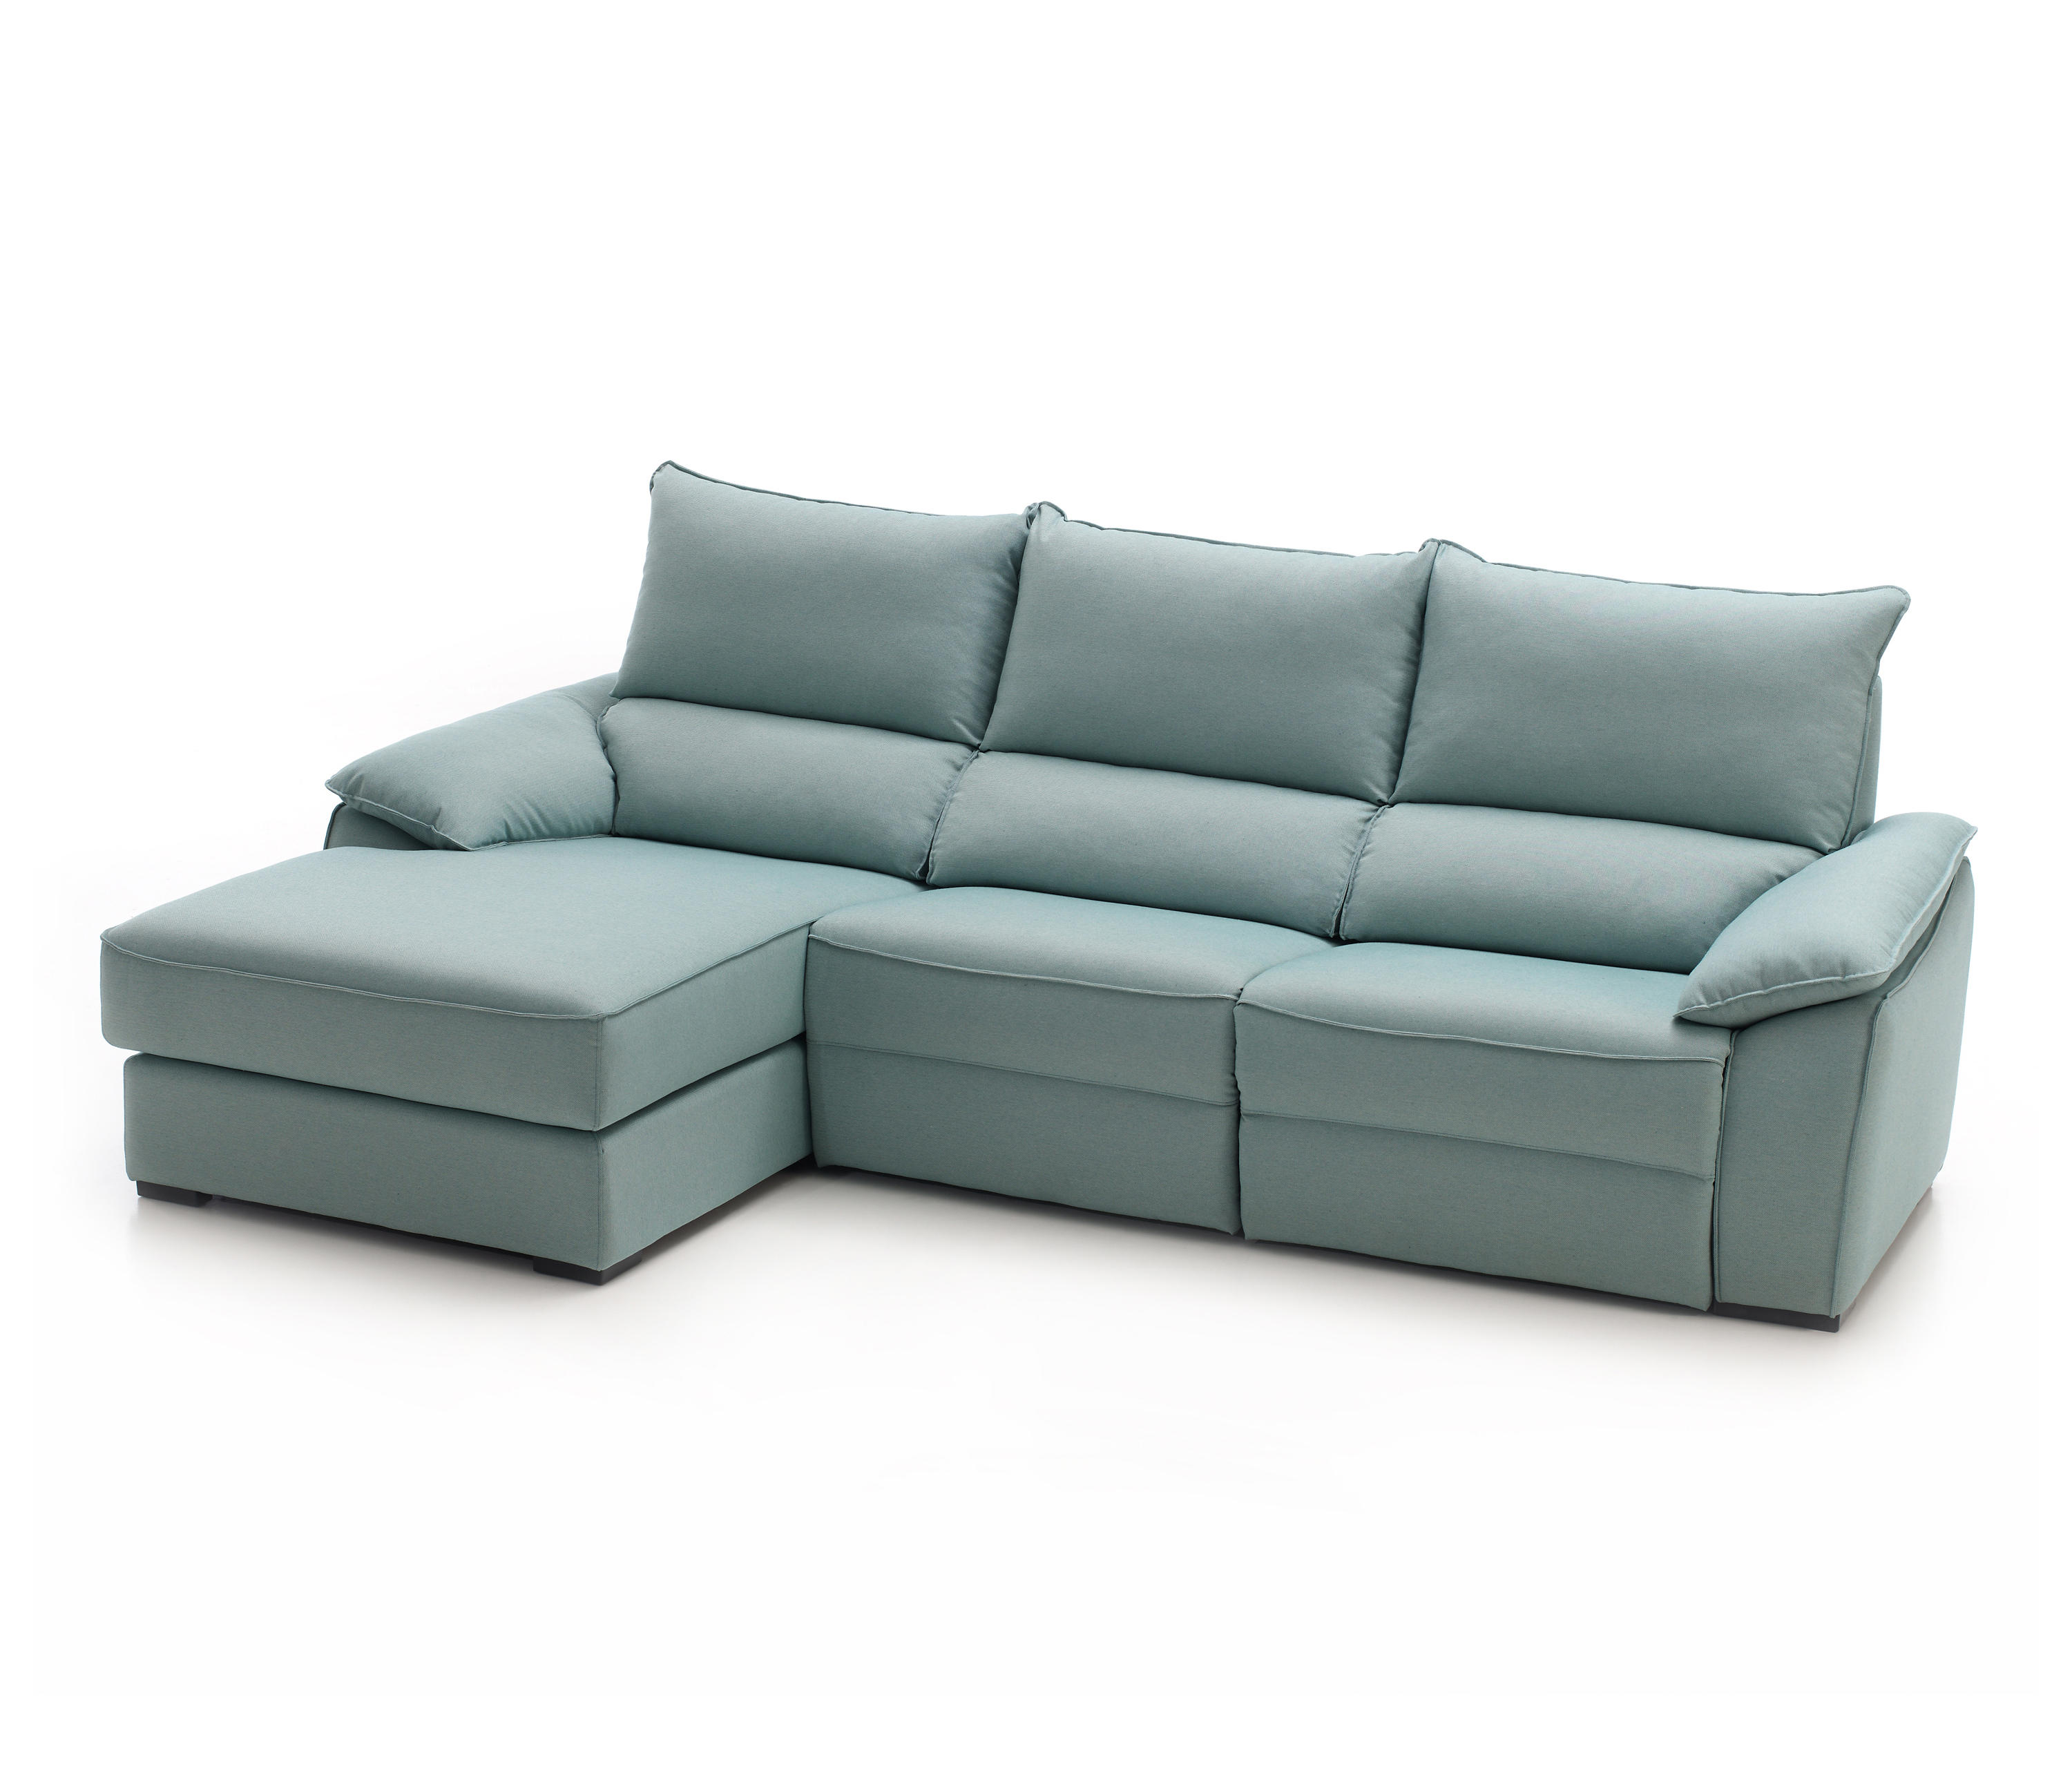 Groe sofas u form elegant in schoko mit hocker als l oder u form with groe sofas u form great Big sofa hocker